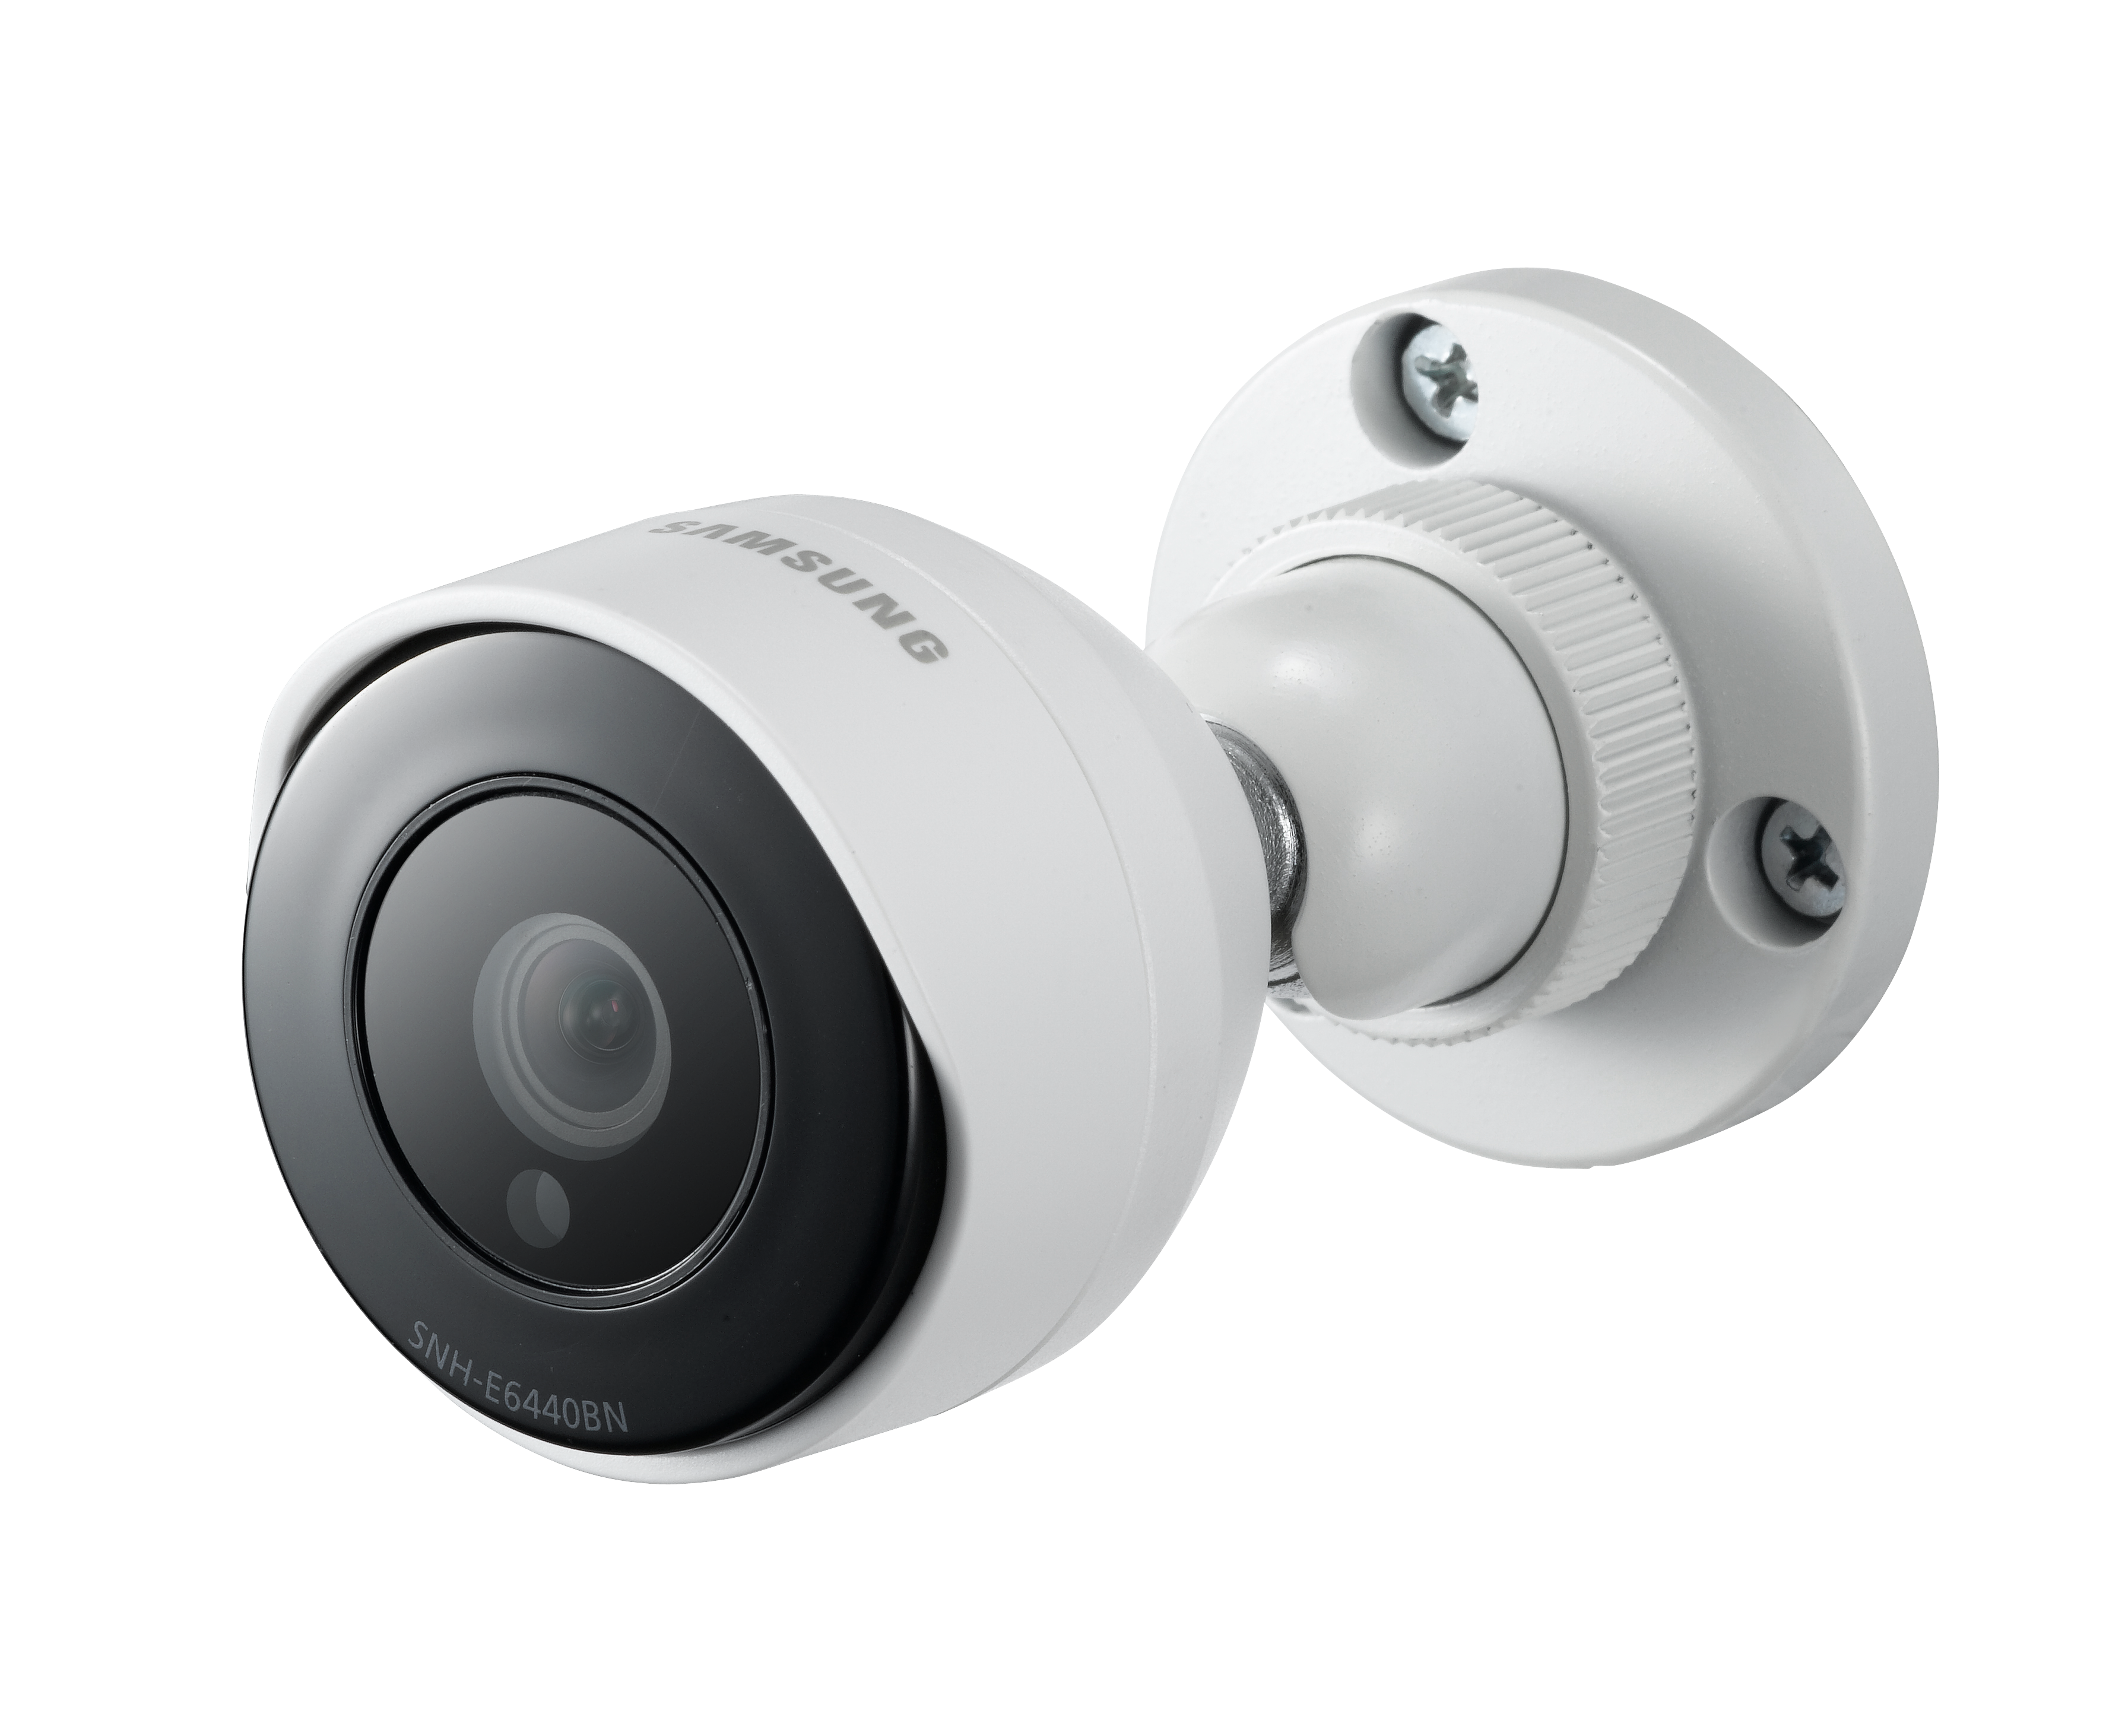 Samsung launches 1080p SmartCam HD Outdoor WiFi Home Camera